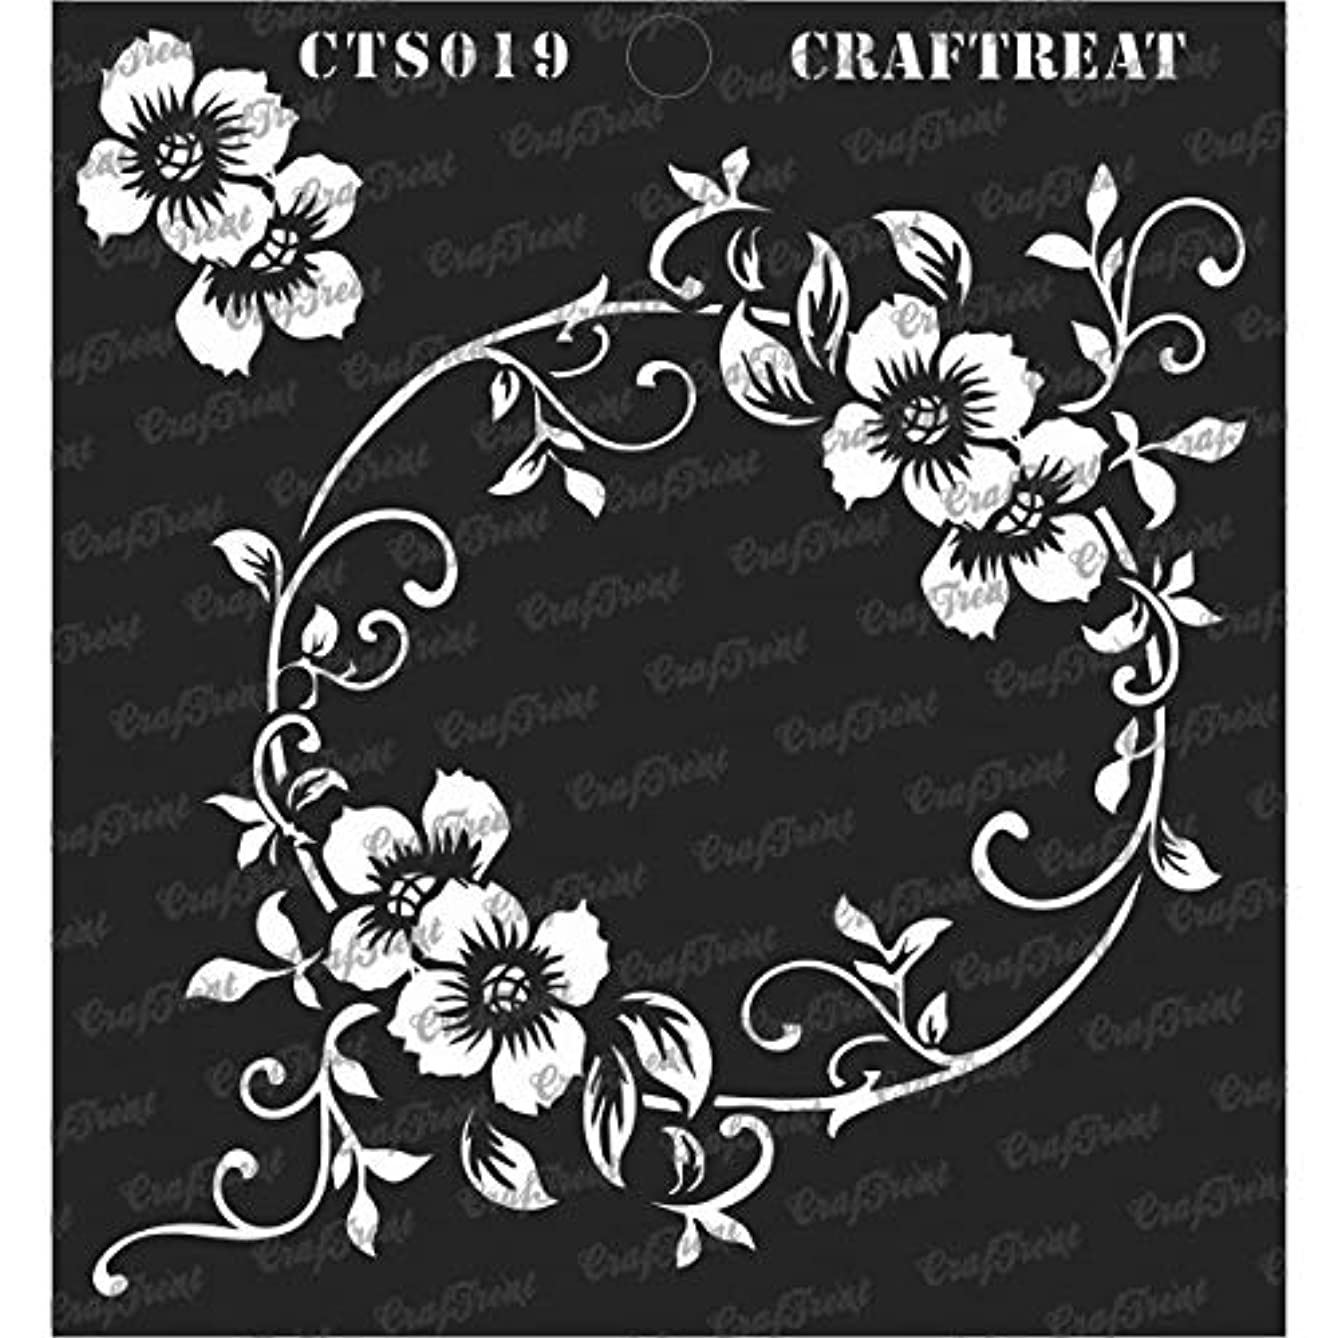 CrafTreat Stencil - Flourish Circle   Reusable Painting Template for Journal, Notebook, Home Decor, Crafting, DIY Albums, Scrapbook and Printing on Paper, Floor, Wall, Tile, Fabric, Wood 6